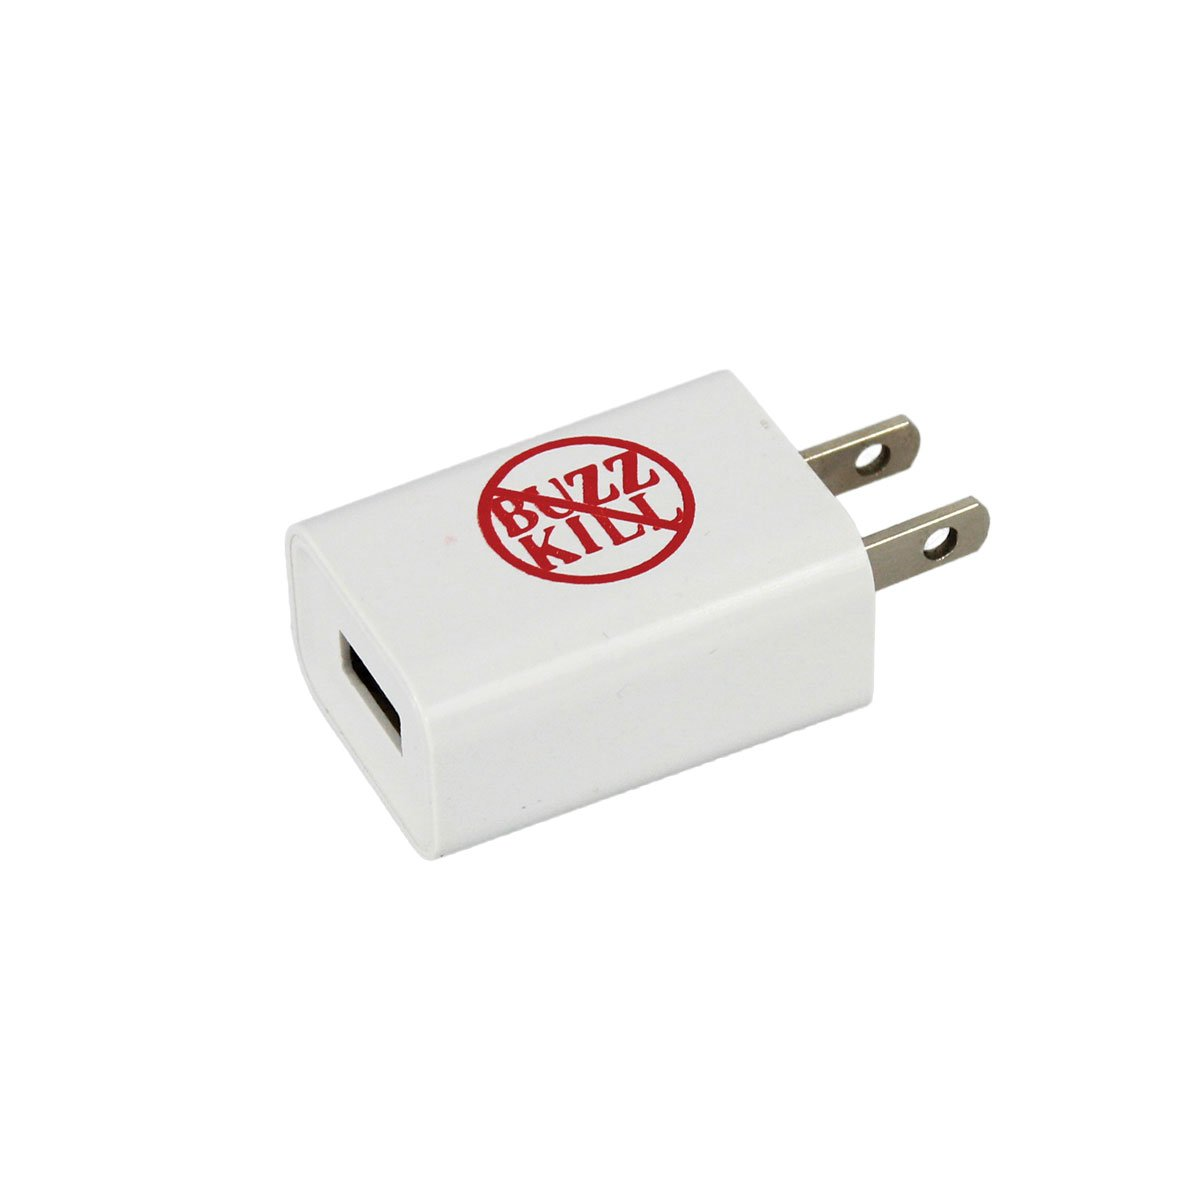 Buzz Kill USB Charger Plug